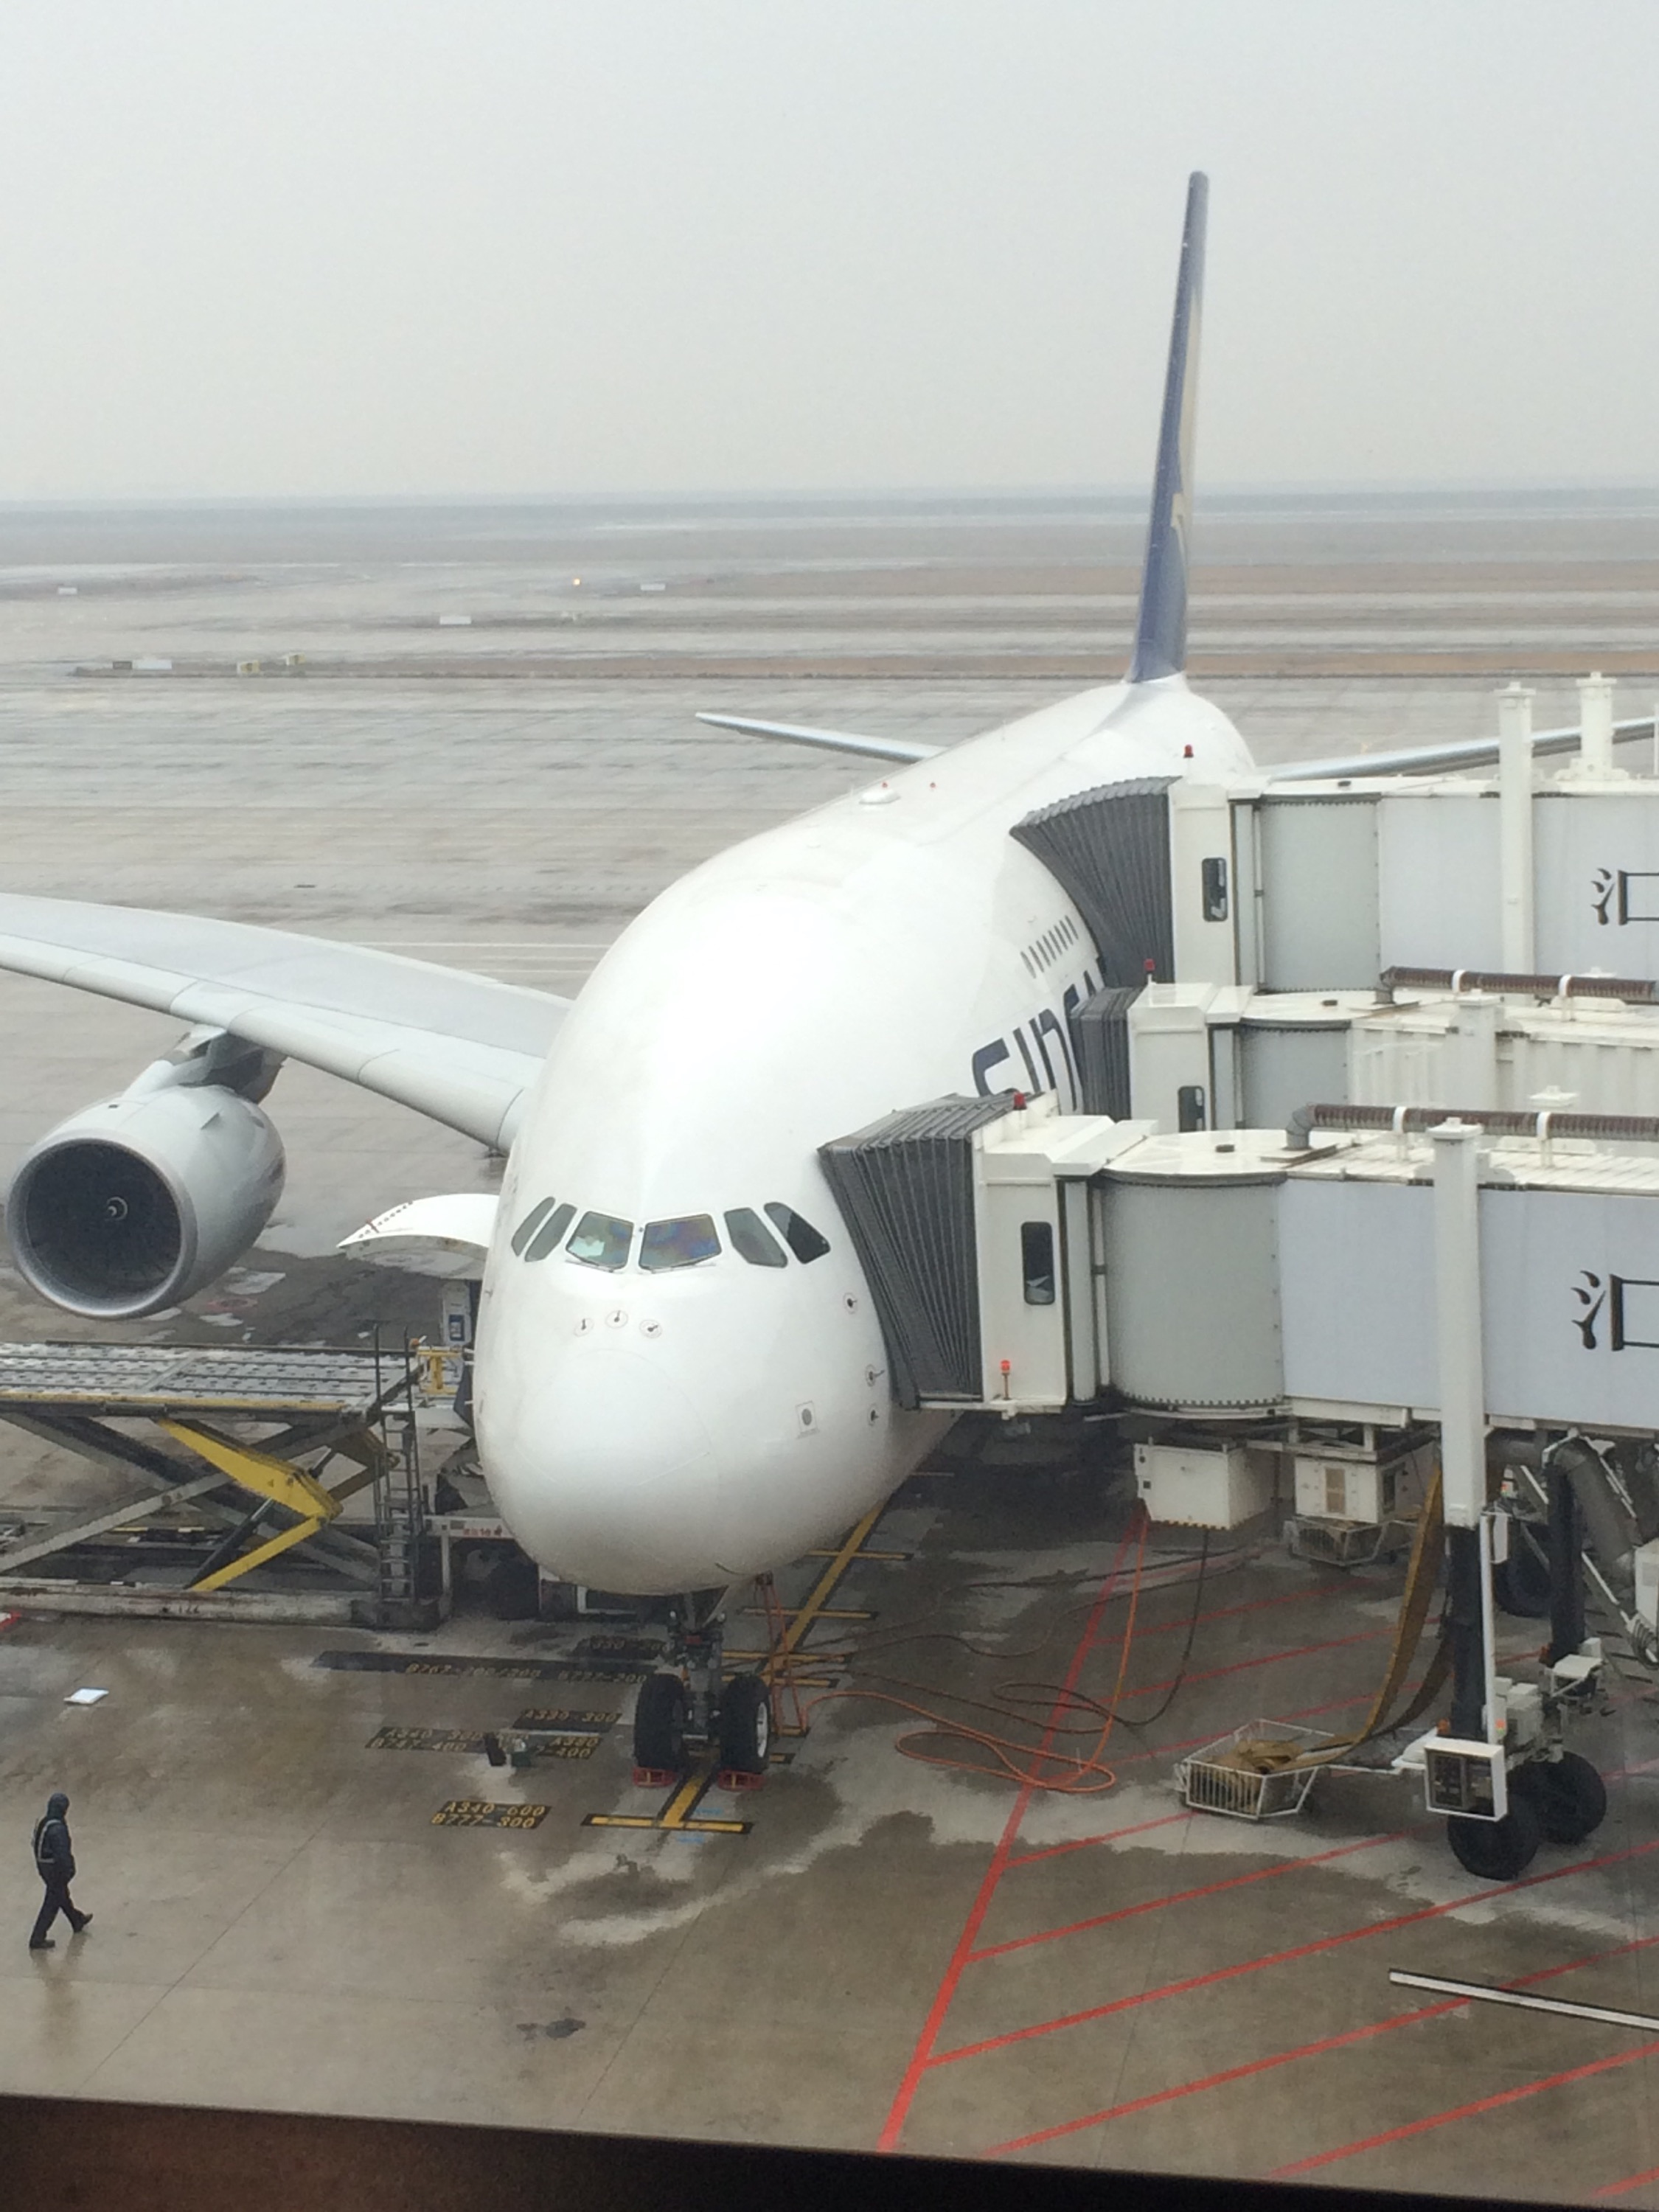 Review: Singapore Airlines business class, SQ288 Sydney-Canberra-Singapore